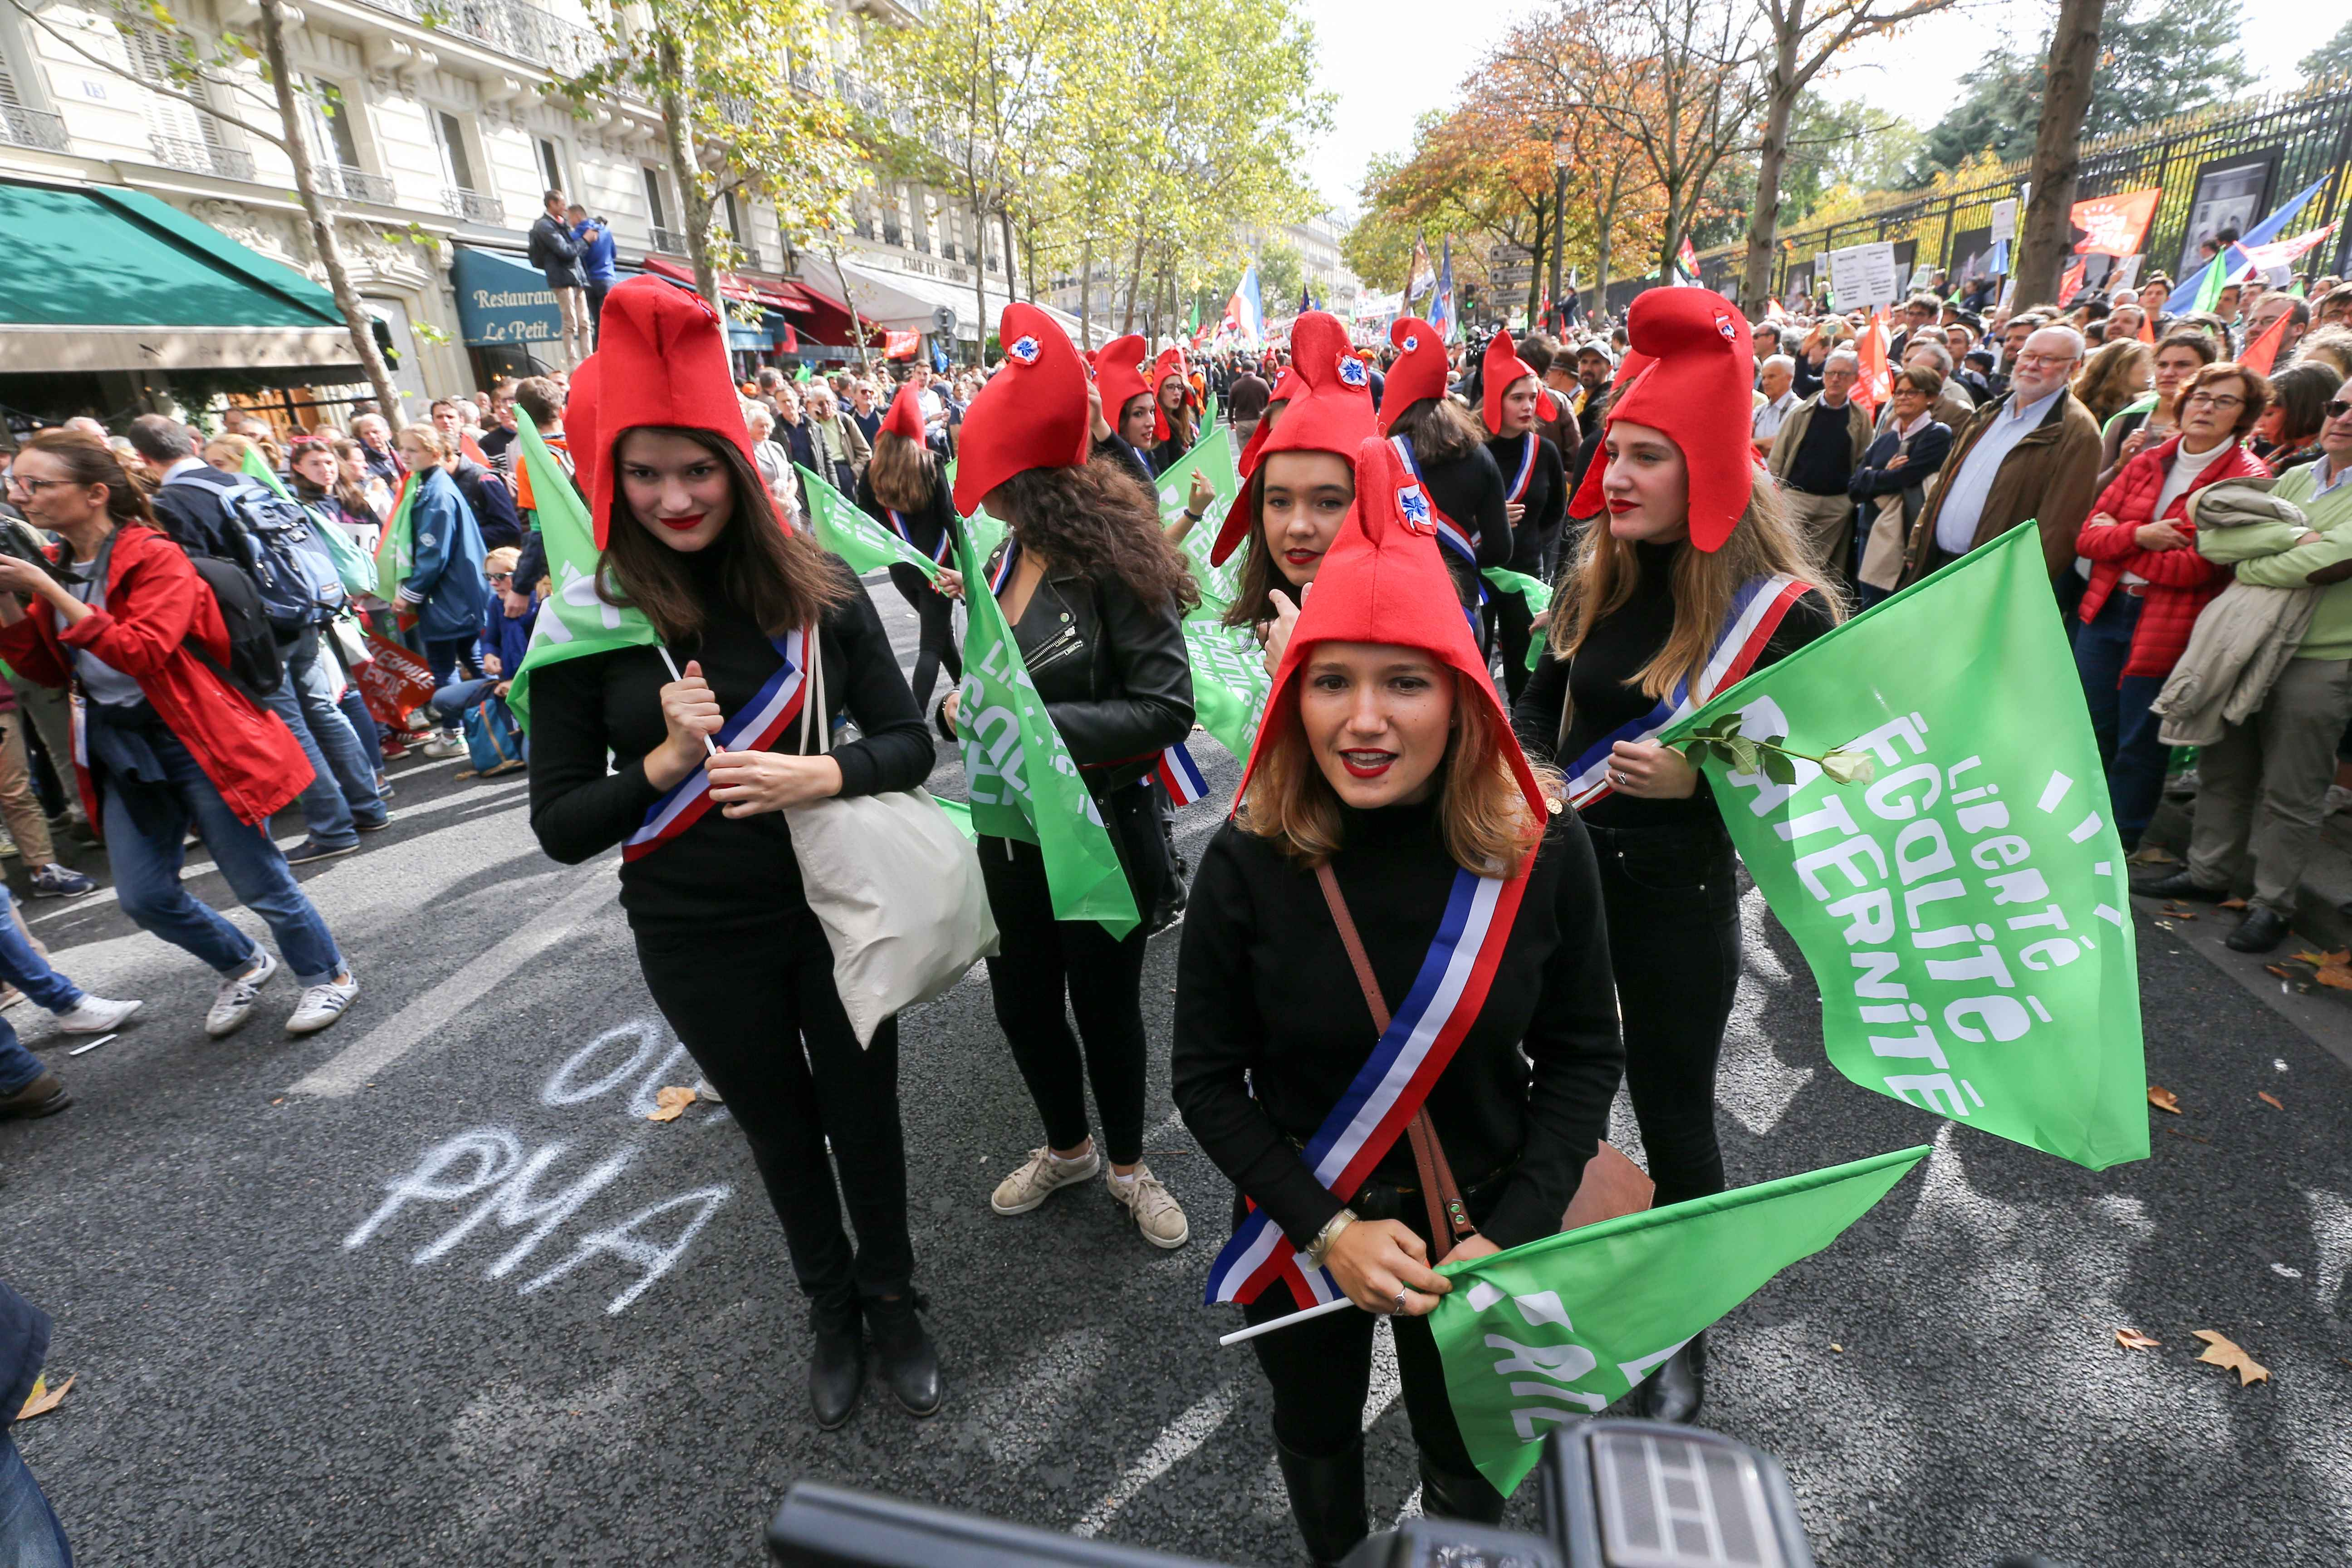 Young girls wearing a Phrygian cap symbolizing the French Republic take part in a protest against a government plan to let single women and lesbians become pregnant with fertility treatments, on October 6, 2019 in Paris. The French National Assembly on Sep